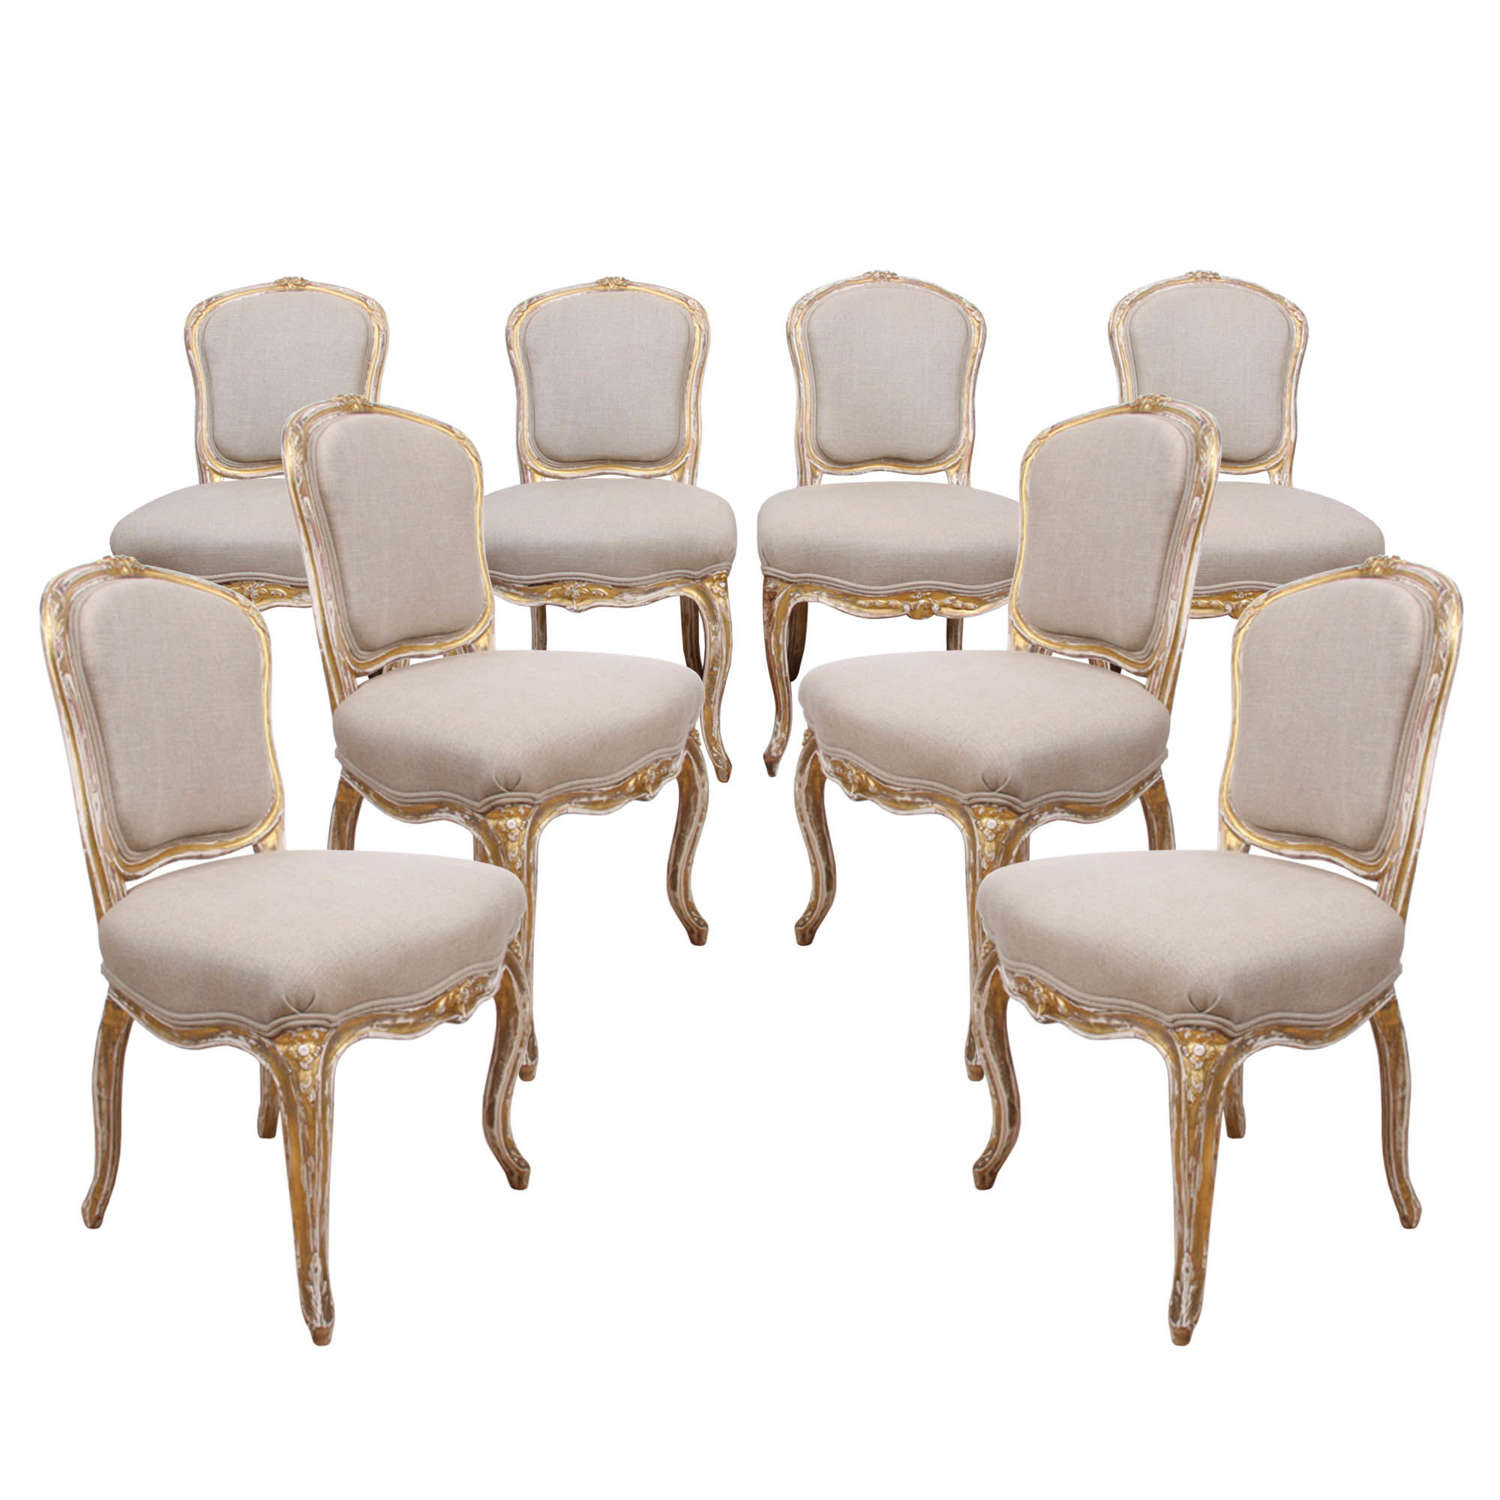 Set of 8 Giltwood Upholstered Dining Chairs